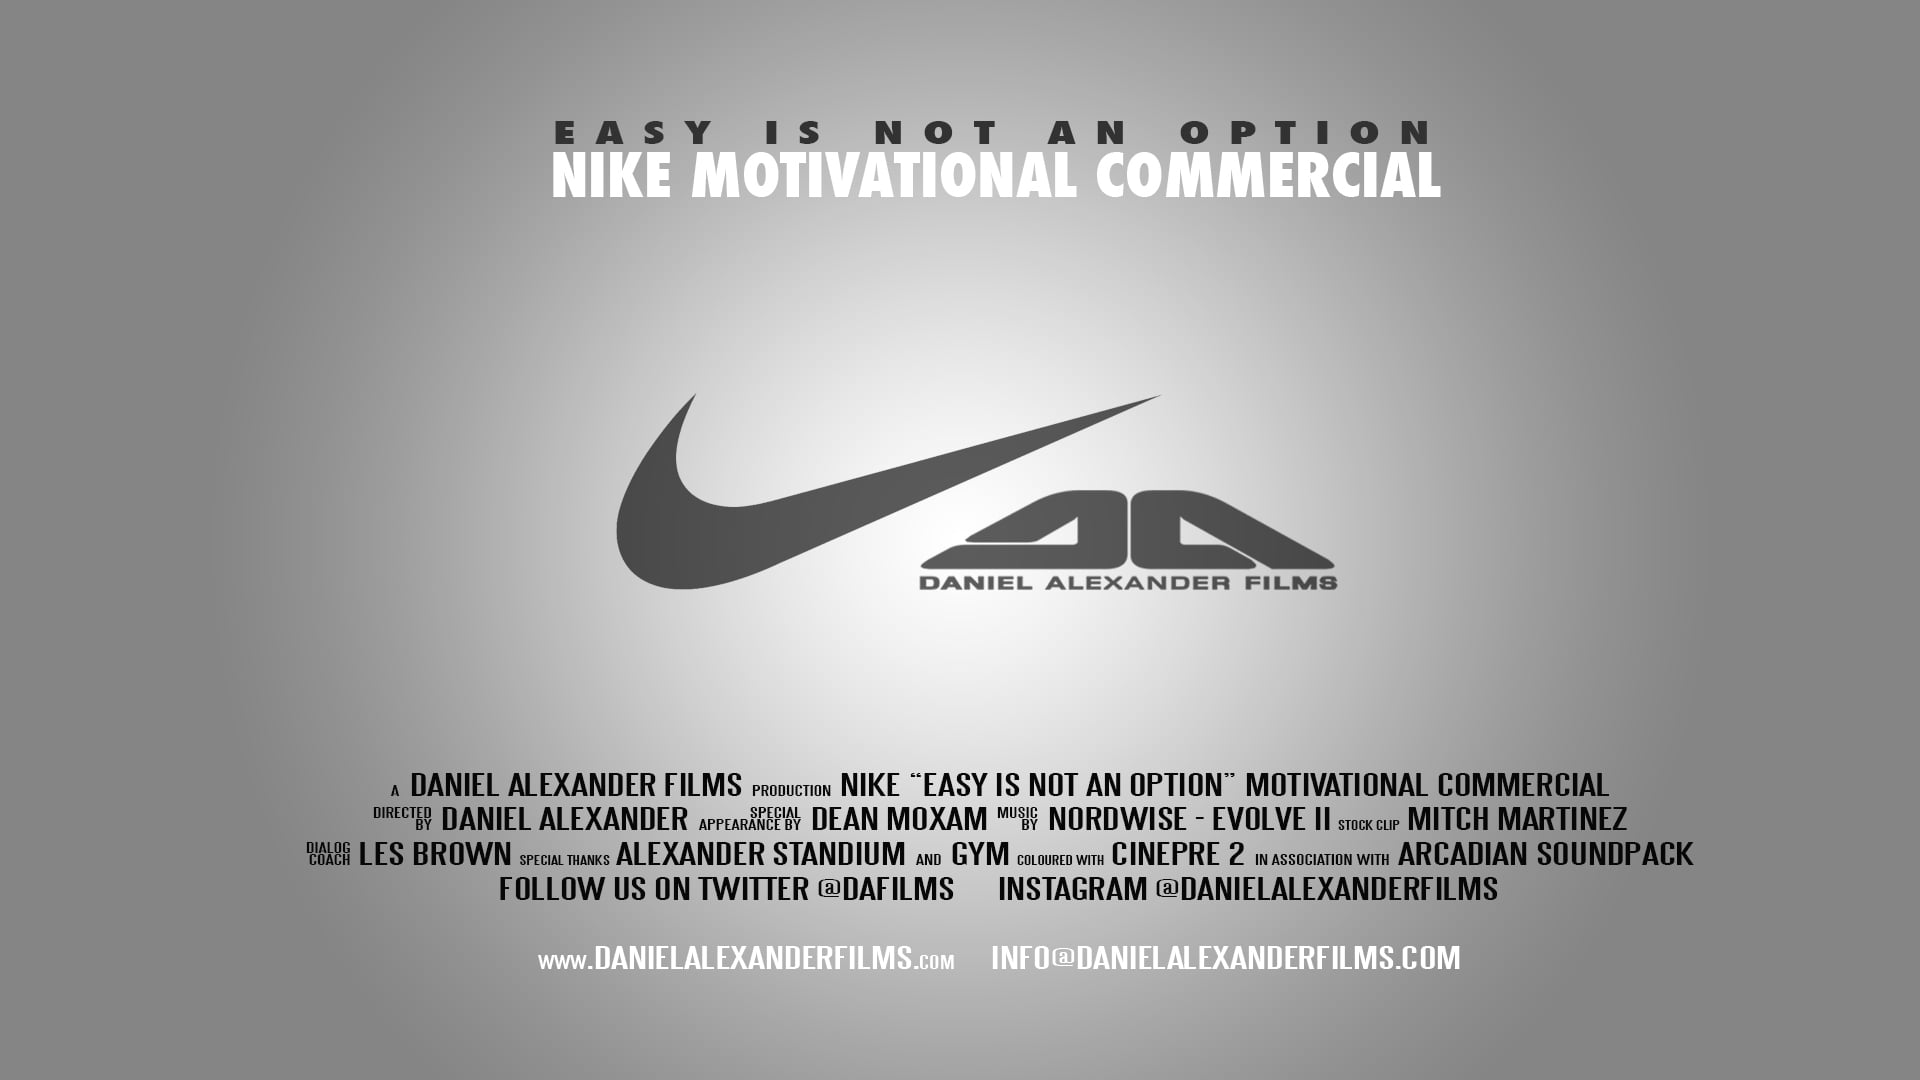 NIKE Motivational Commercial - Easy is not an option